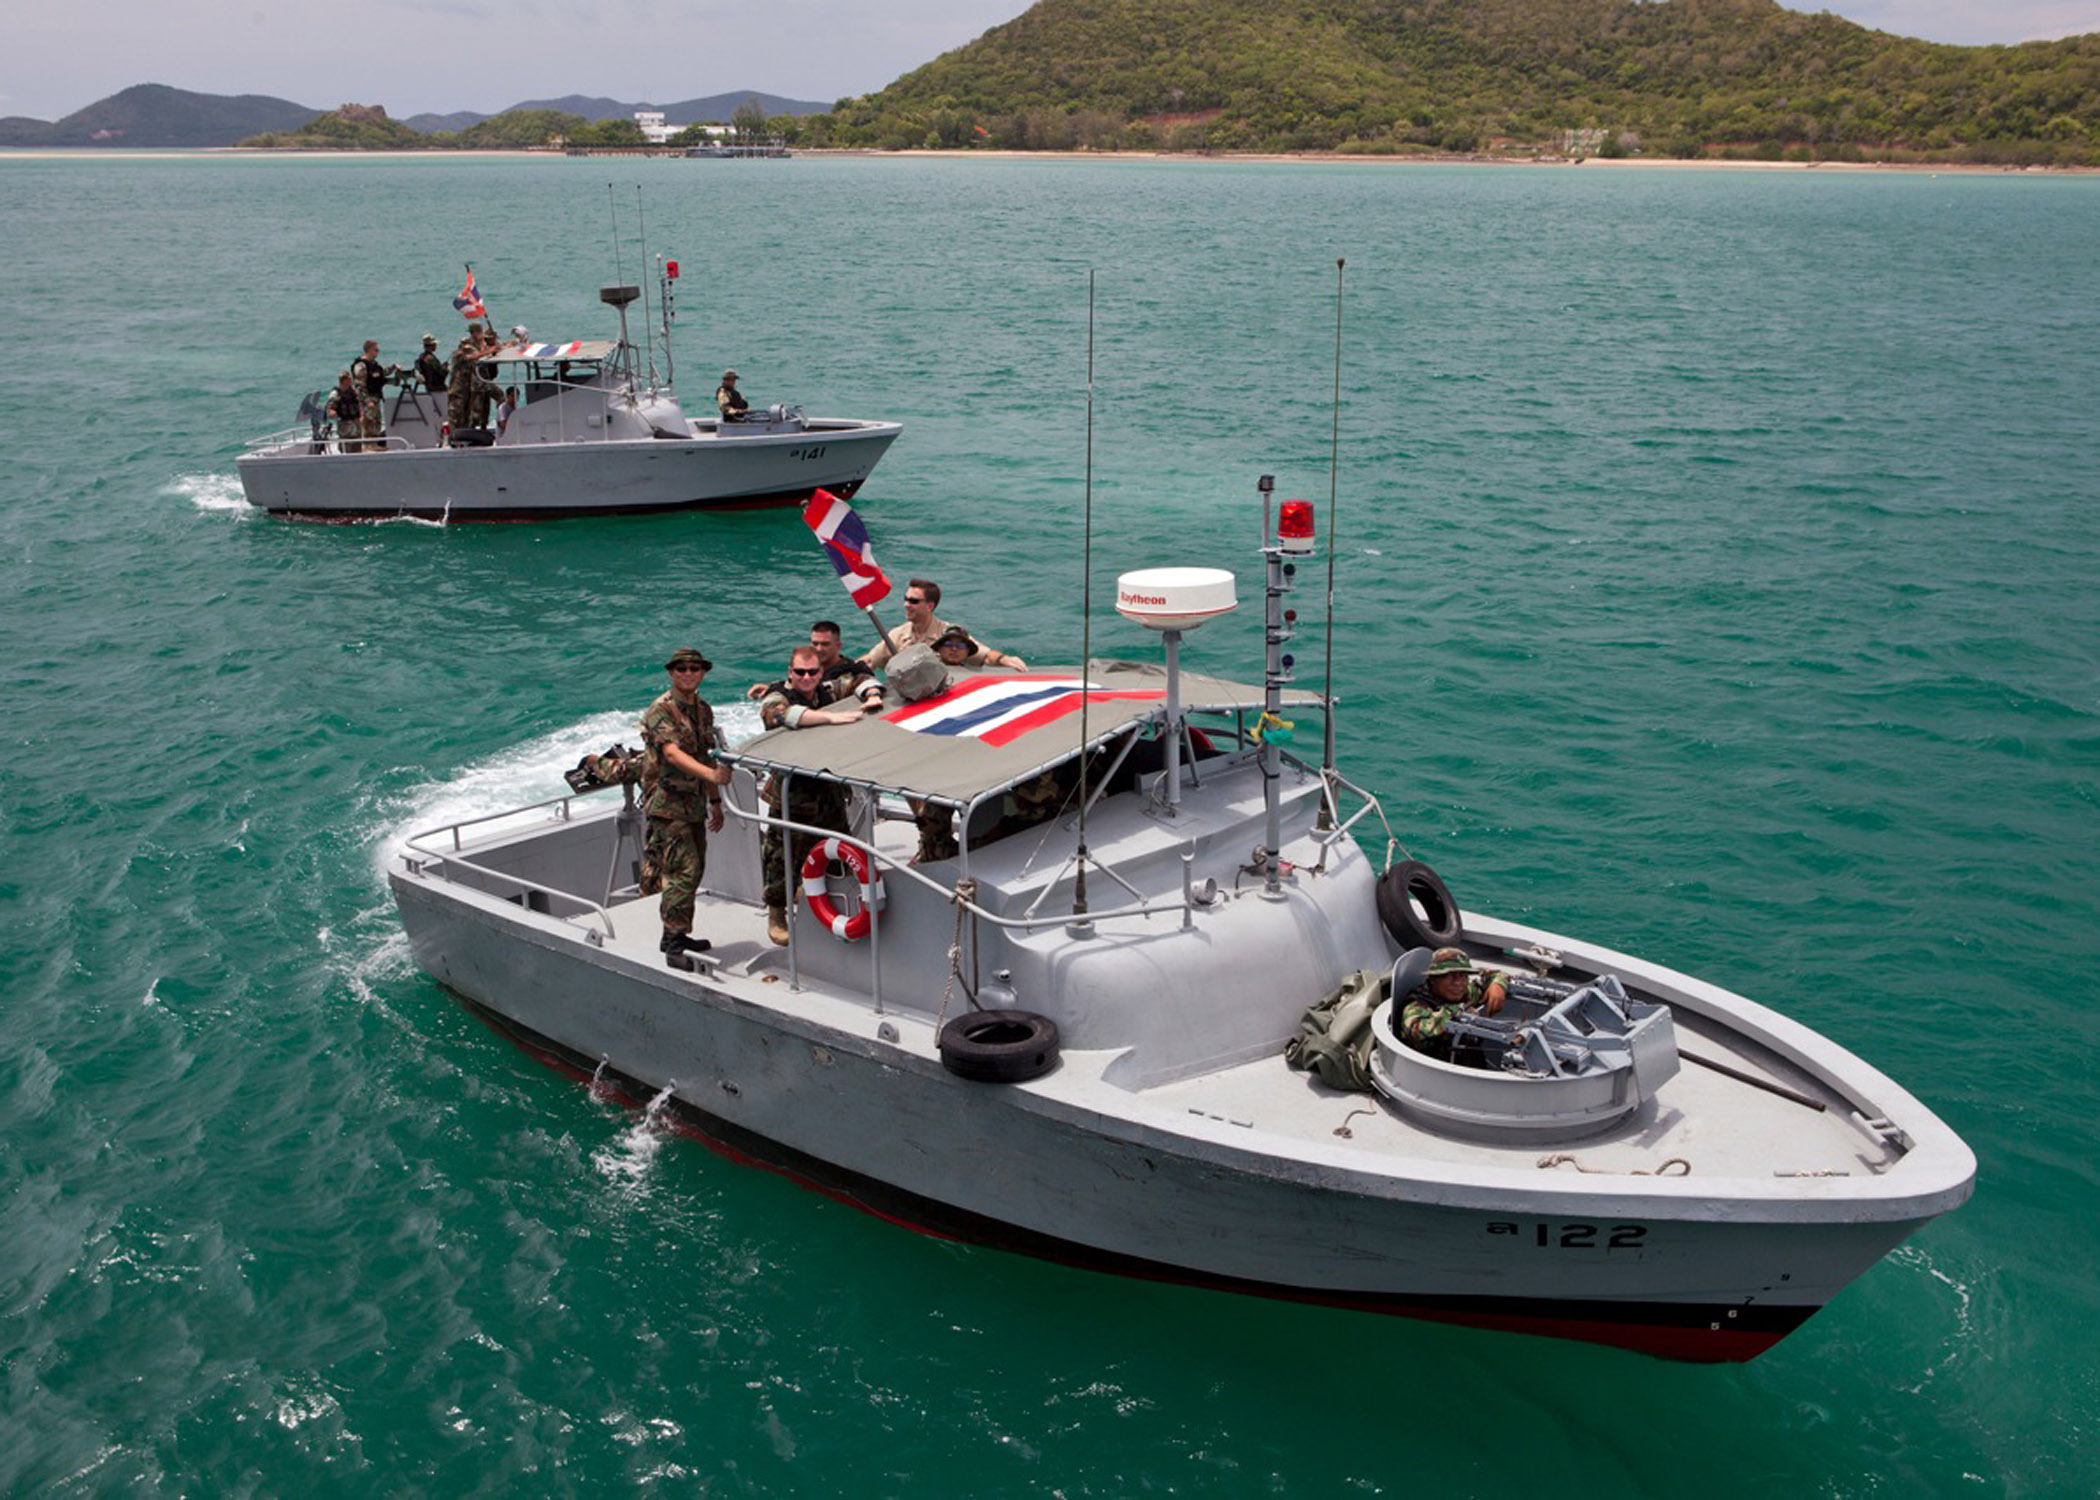 Global Patrol Boats Market 2020 Future Trends – Fassmer, Connor Industries,  FB Design, Maritime Partner AS – The Daily Chronicle